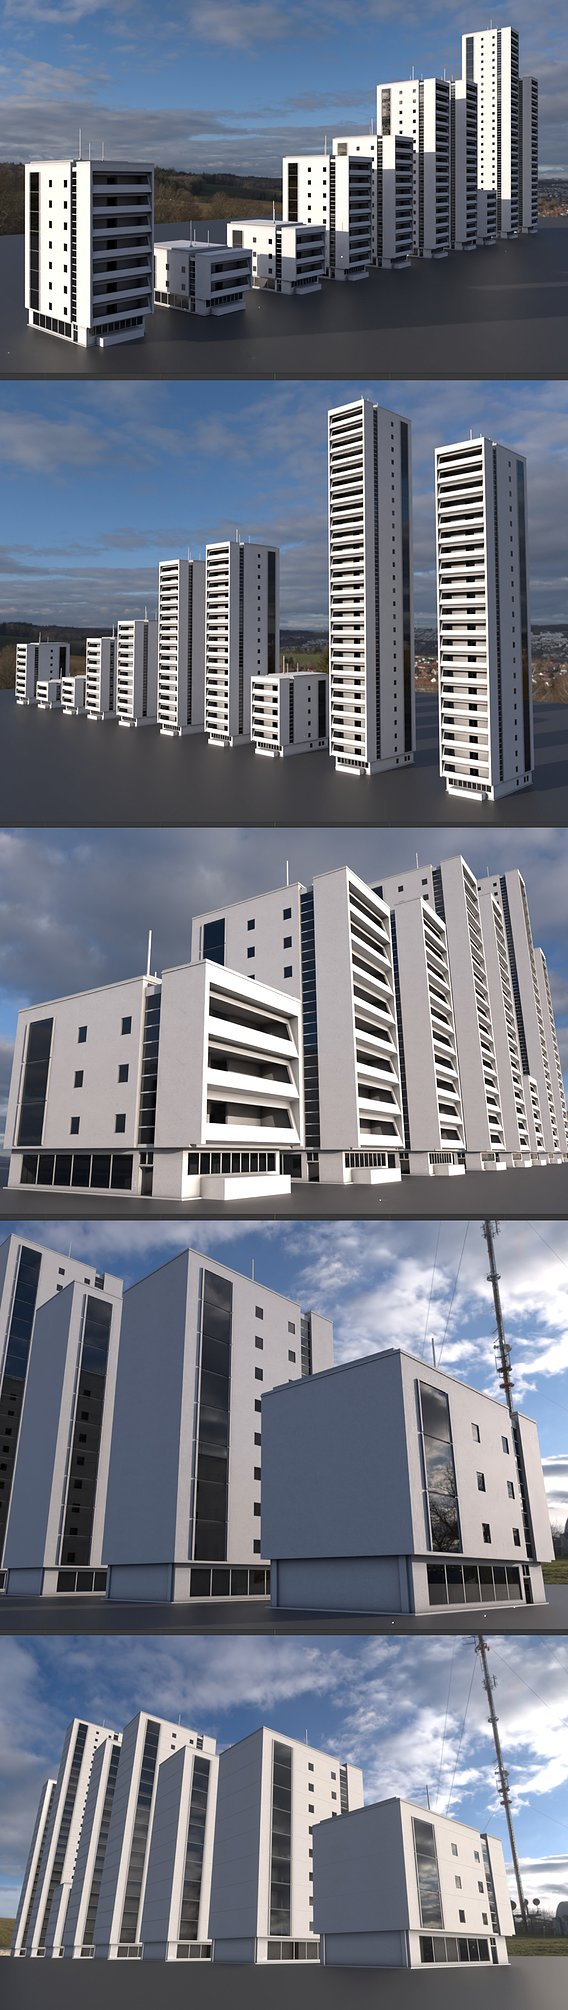 Residential Buildings Set upgrade for a use in Blender 2-91